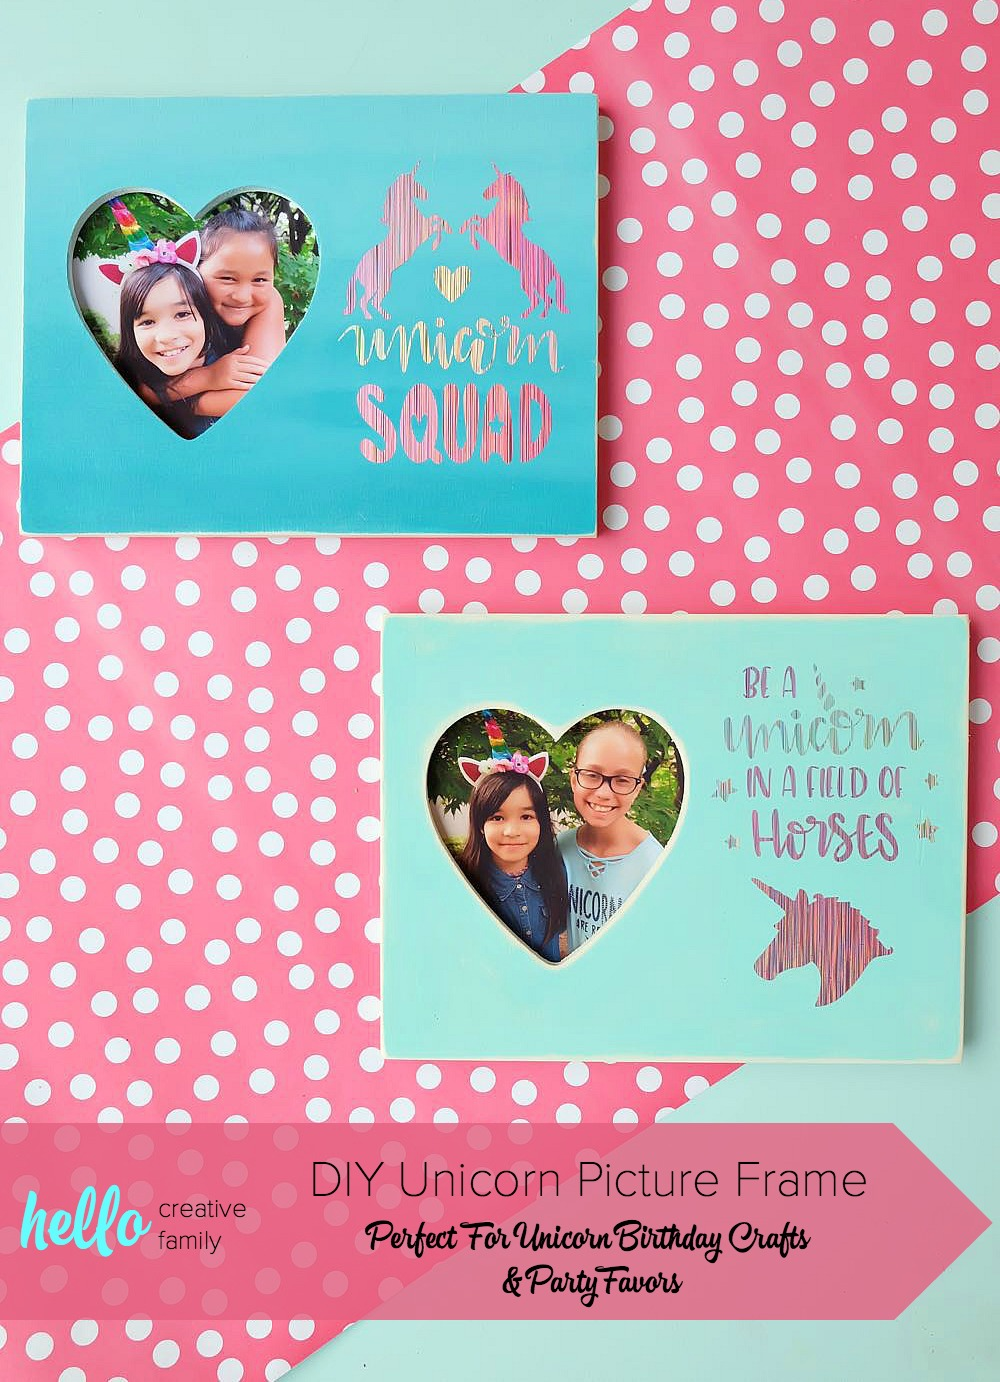 DIY Unicorn Picture Frame- Perfect For Unicorn Birthday